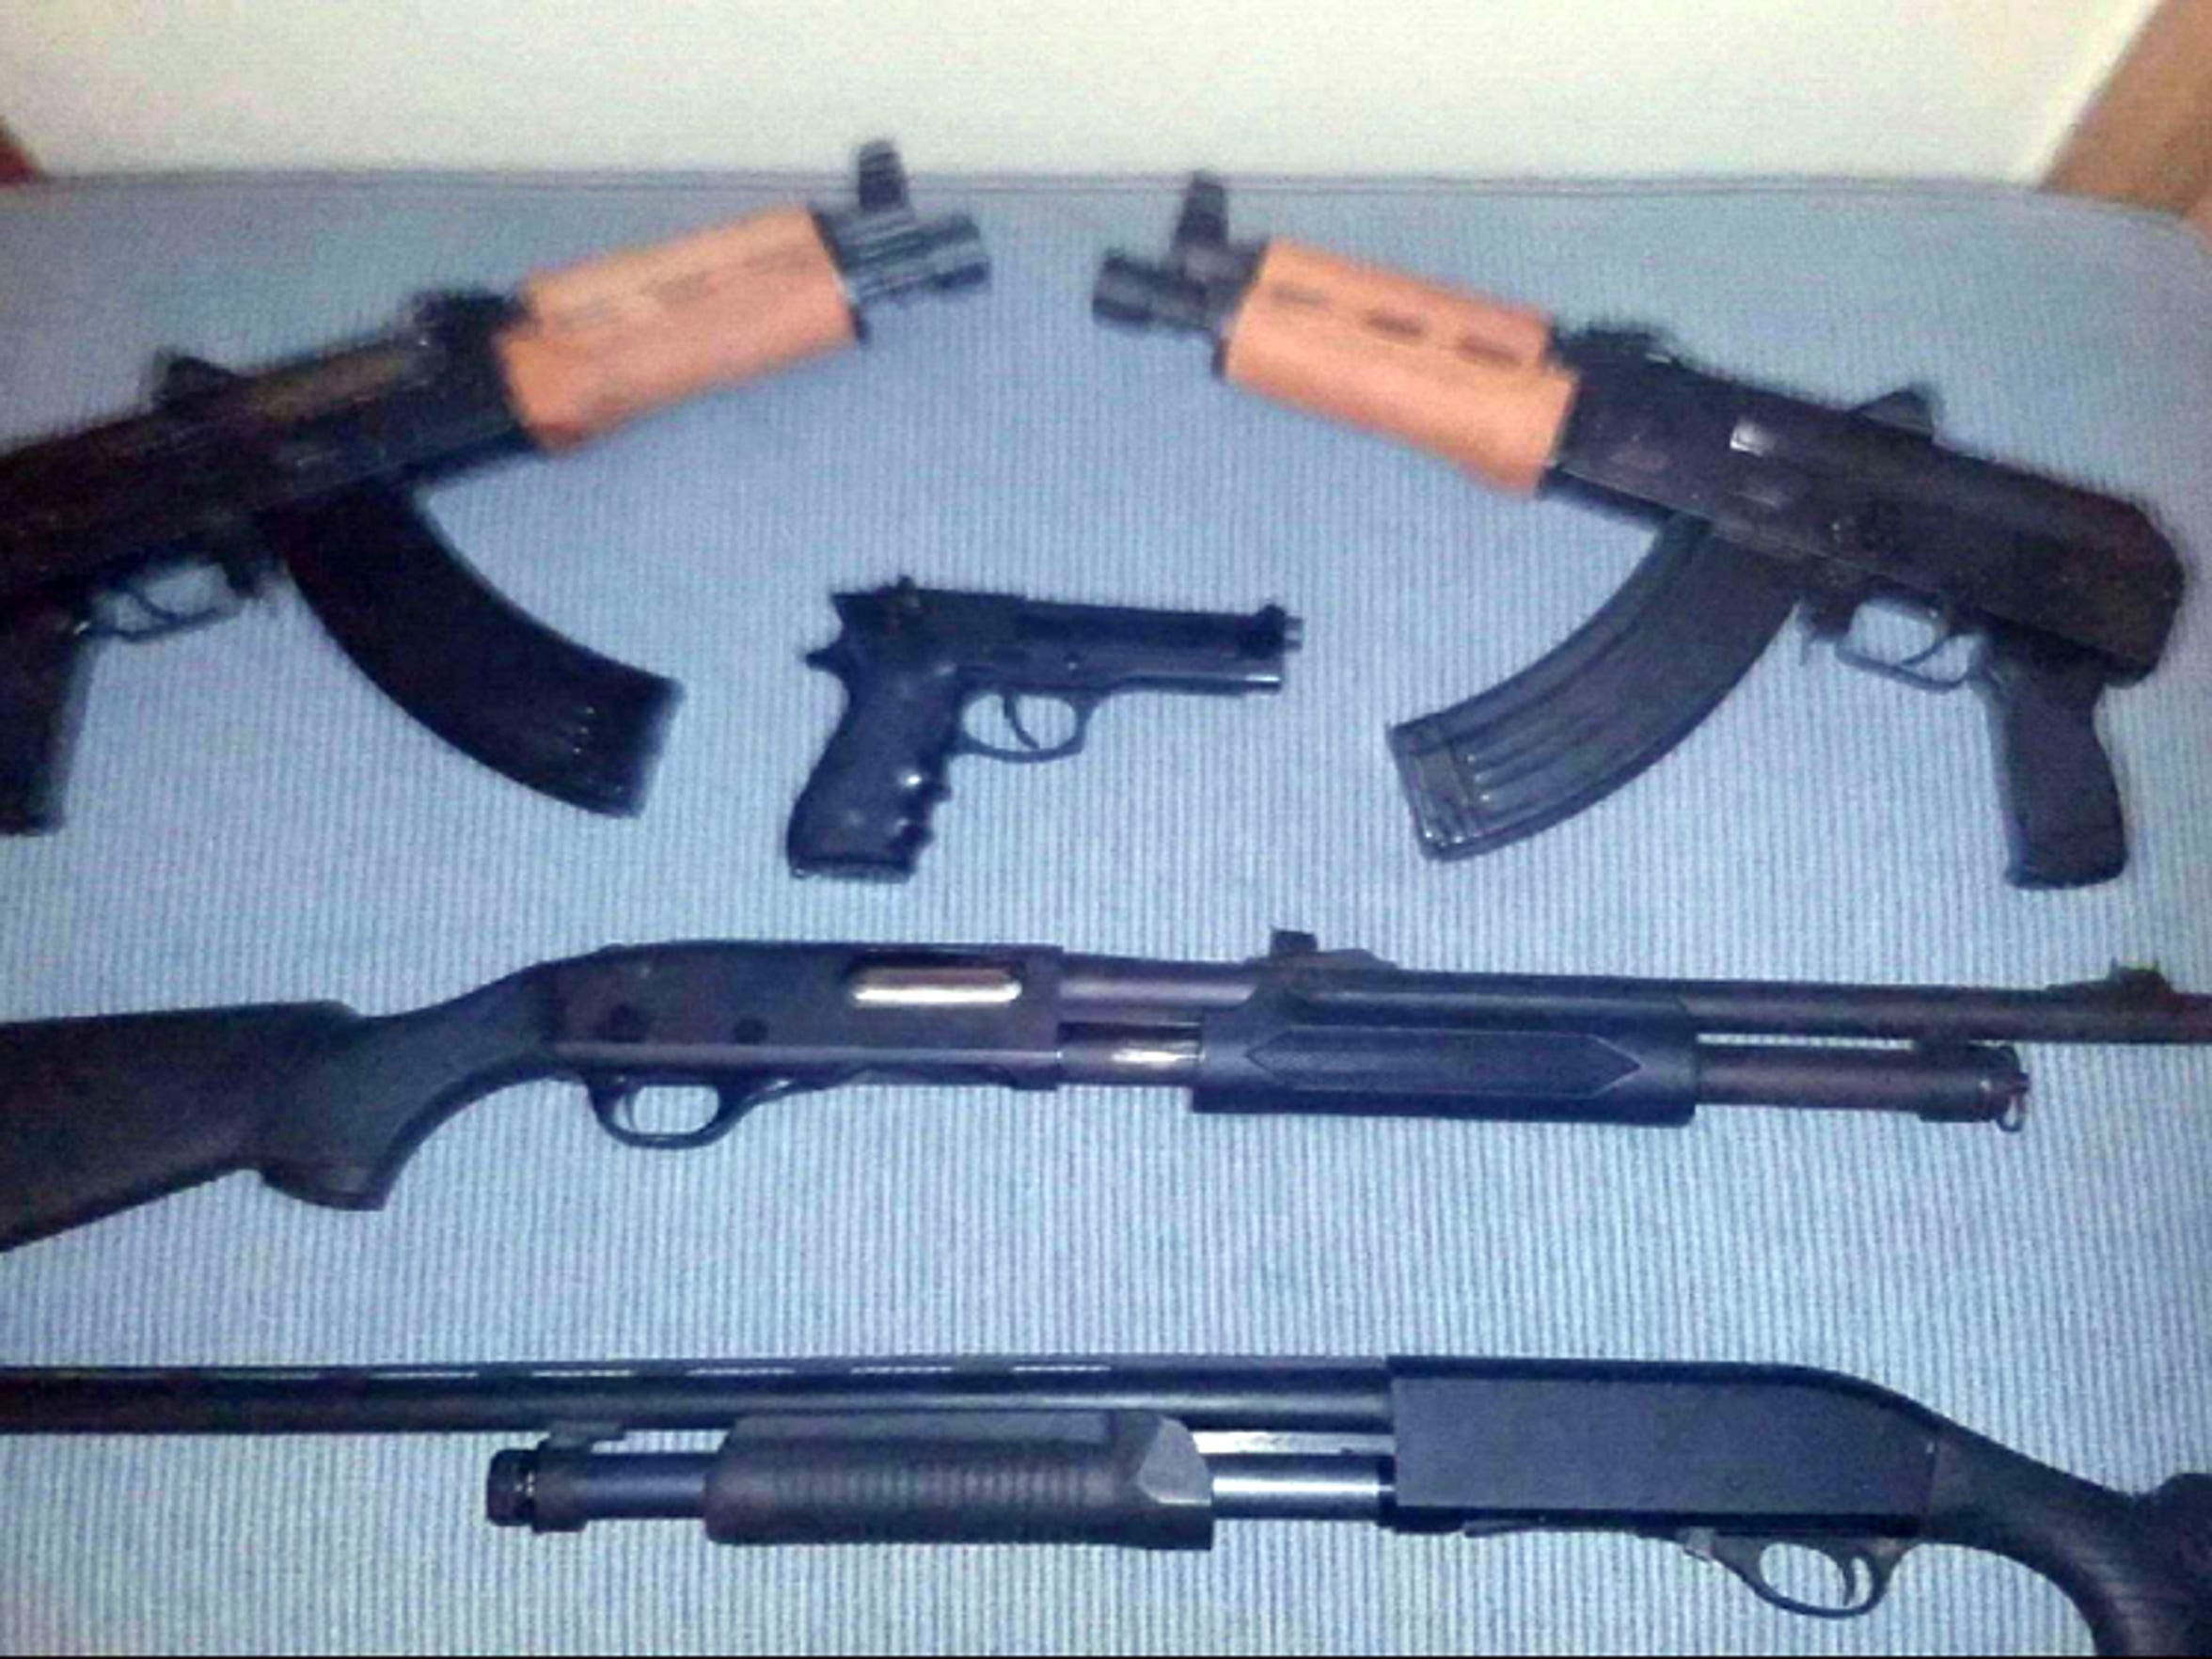 Guns in the collection of former gang member Rico include